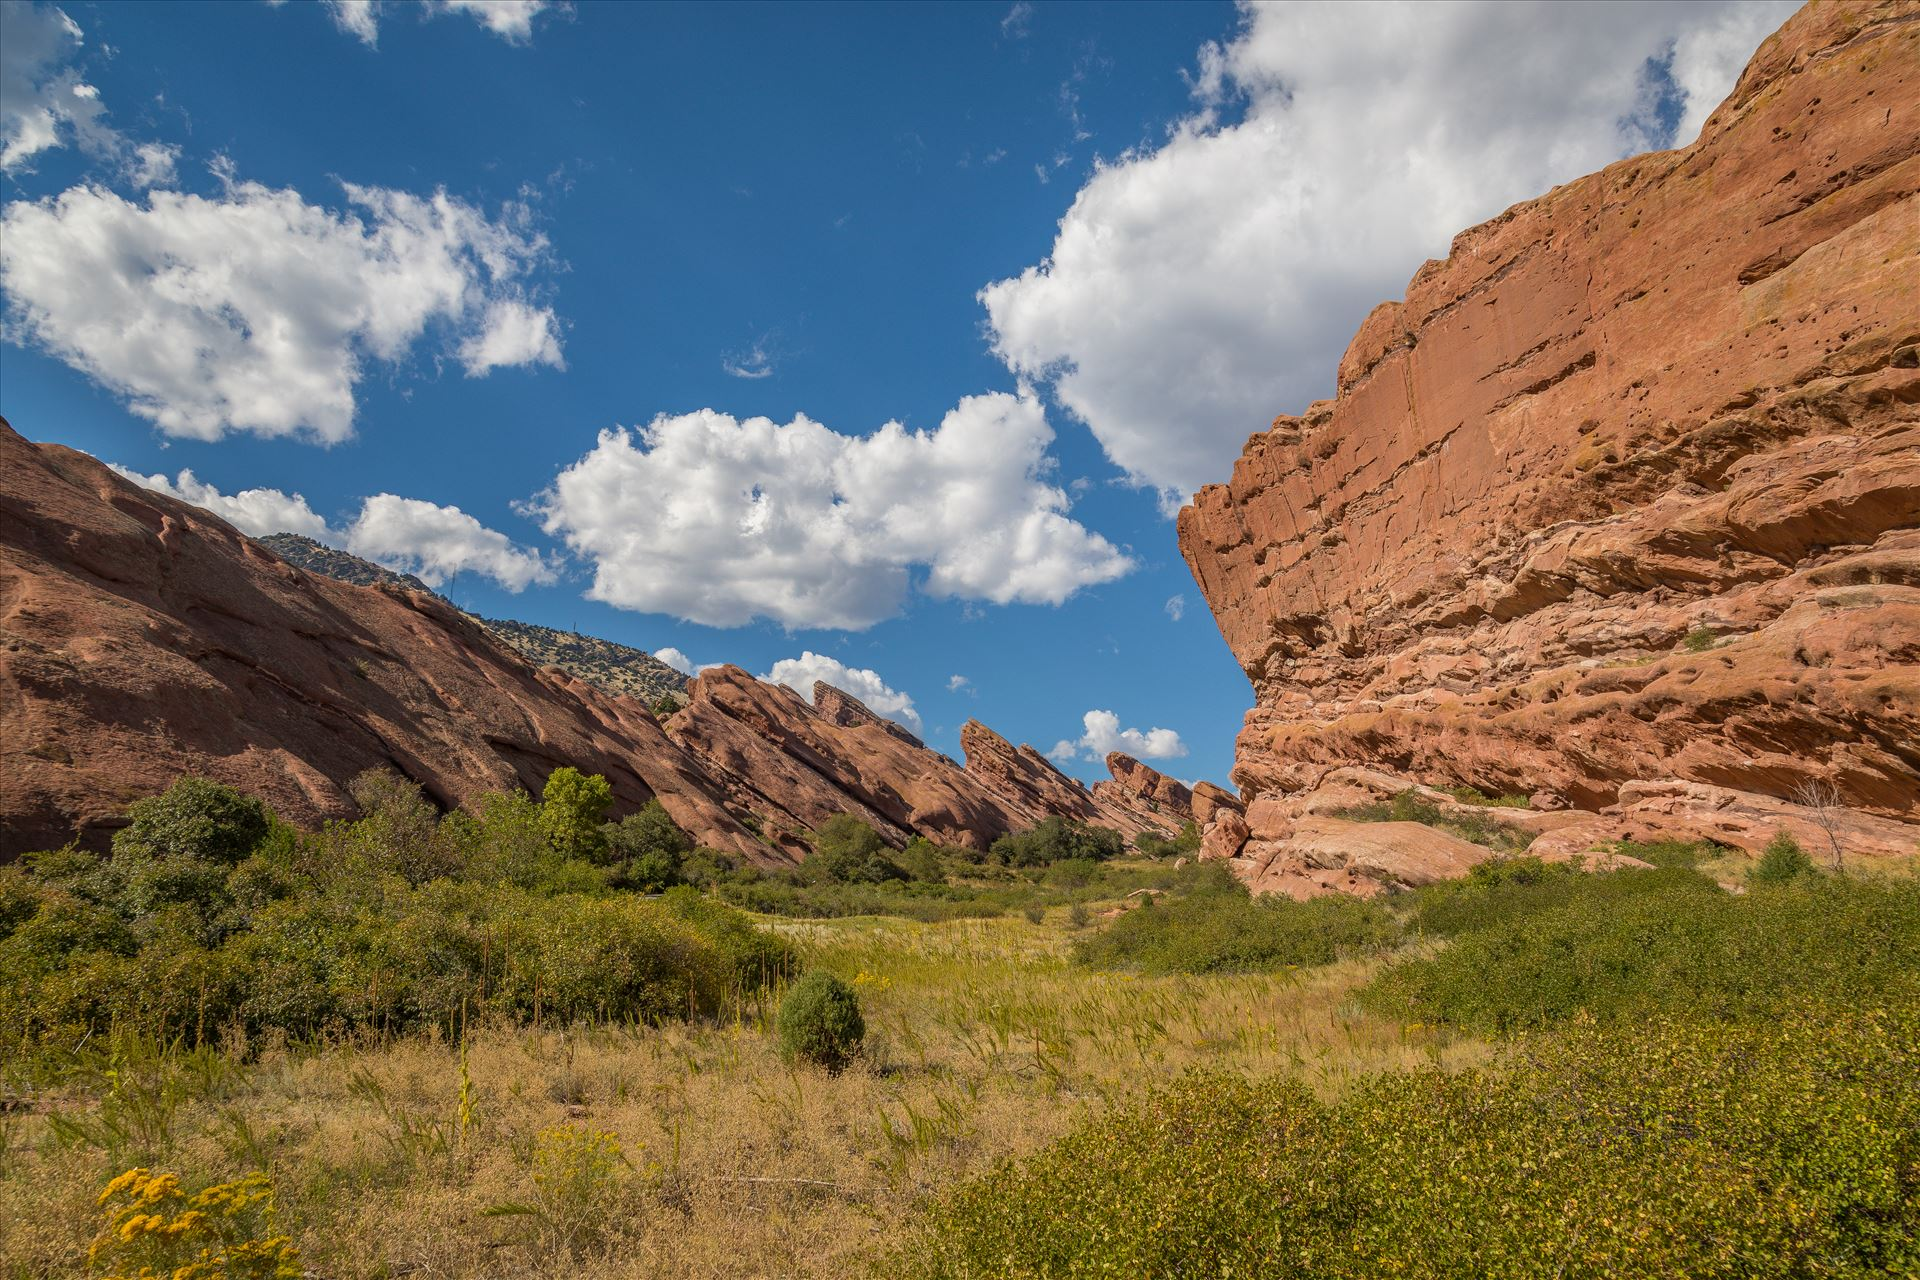 Red Rocks - Shipwreck Trail - From Shipwreck Trail at Red Rocks Park and Amphitheater, Morrison, Colorado. by D Scott Smith